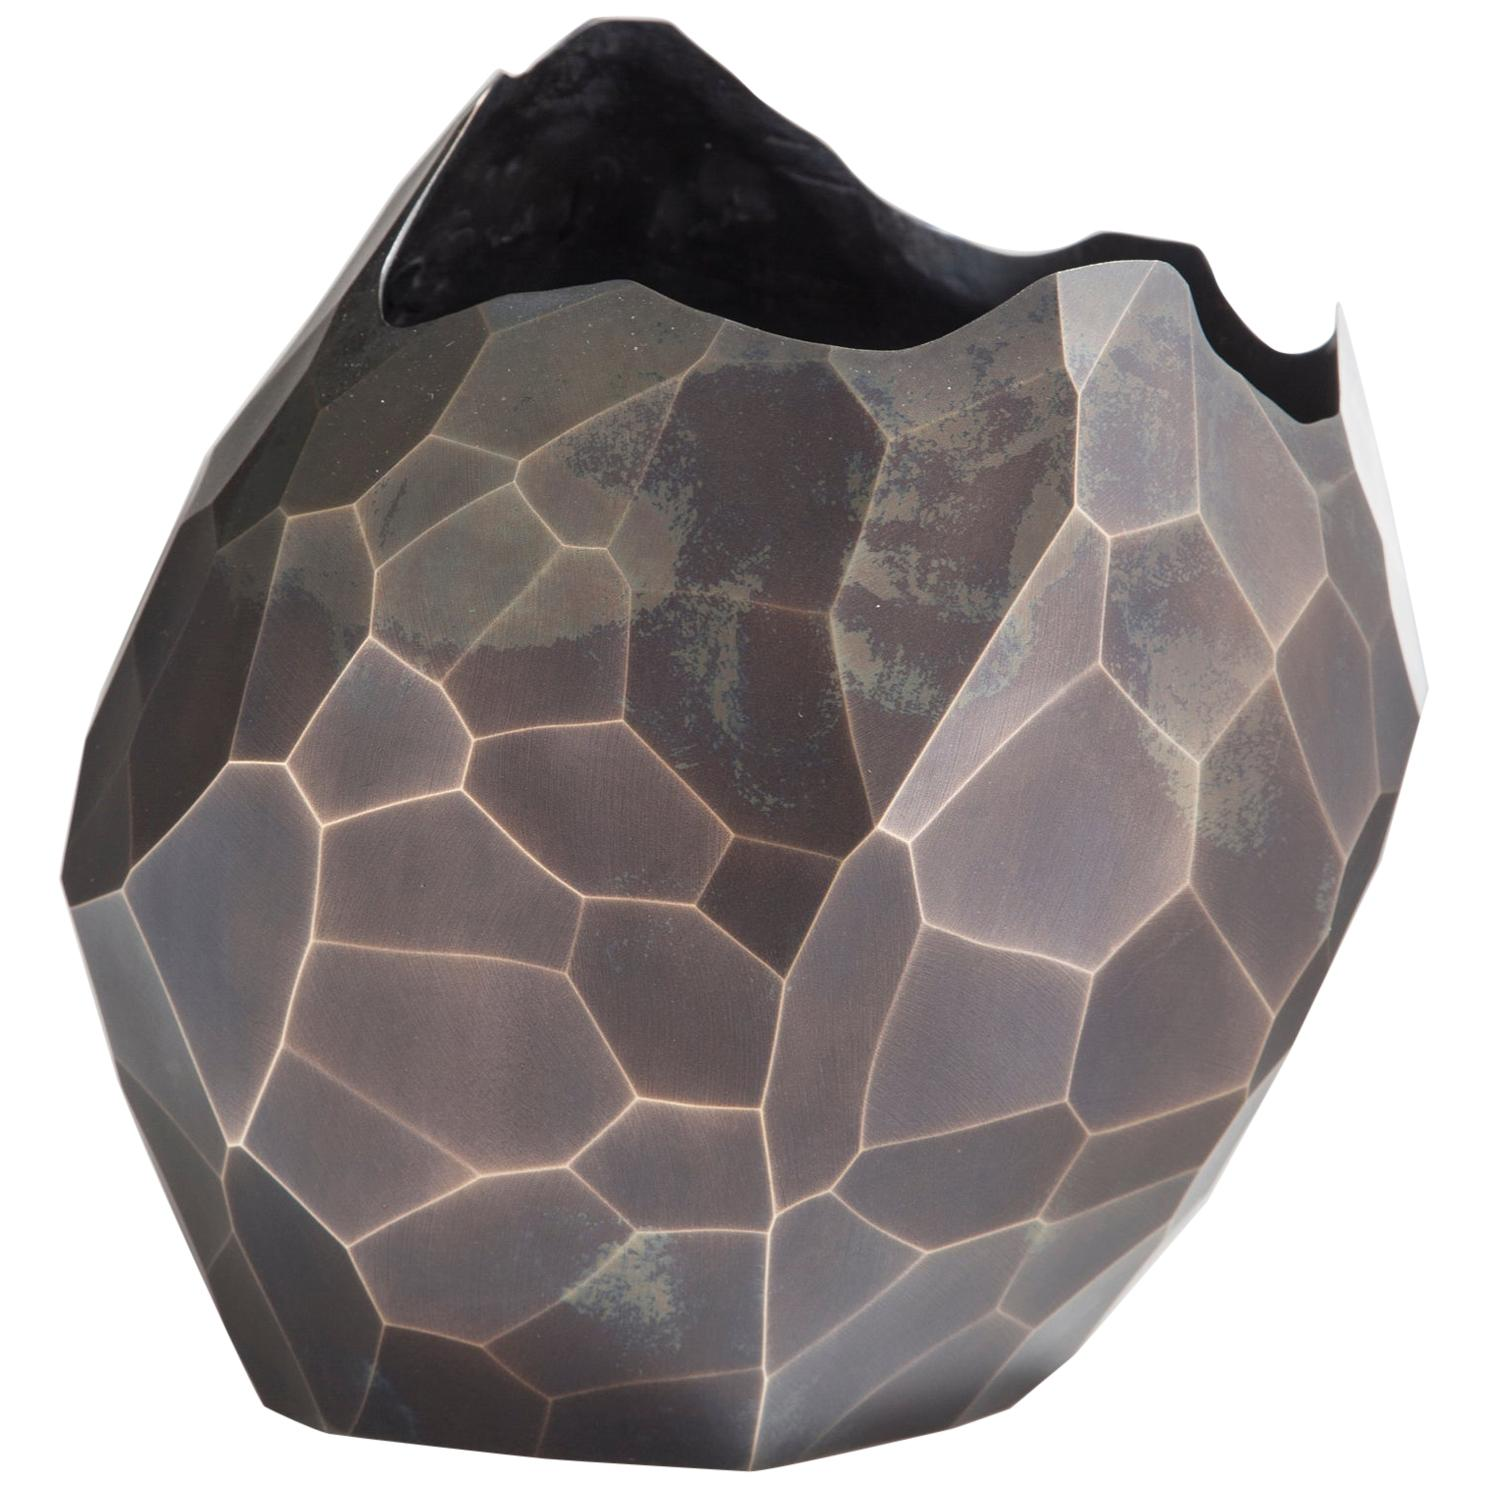 Facet Small Vase in Bronze with Dark Patina by David Wiseman, 2014